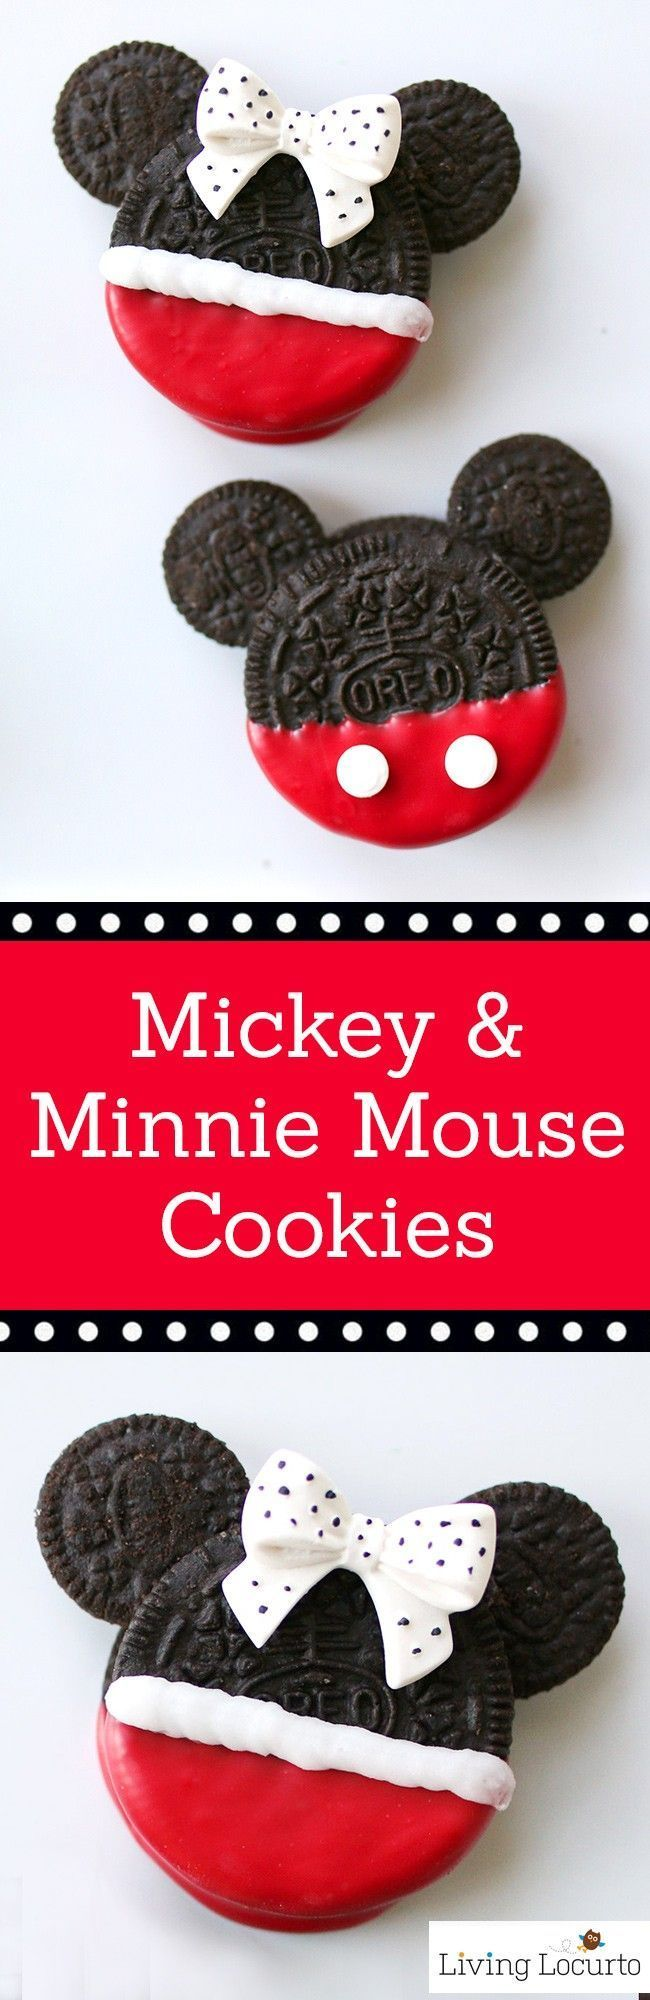 Cute Disney Themed No-Bake Cookies! Mickey and Minnie Mouse Oreo Cookies are perfect for a Disney Birthday Party or Everyday Fun Food Idea for Kids! LivingLocurto.com #disney #cookies #mickey #minnie